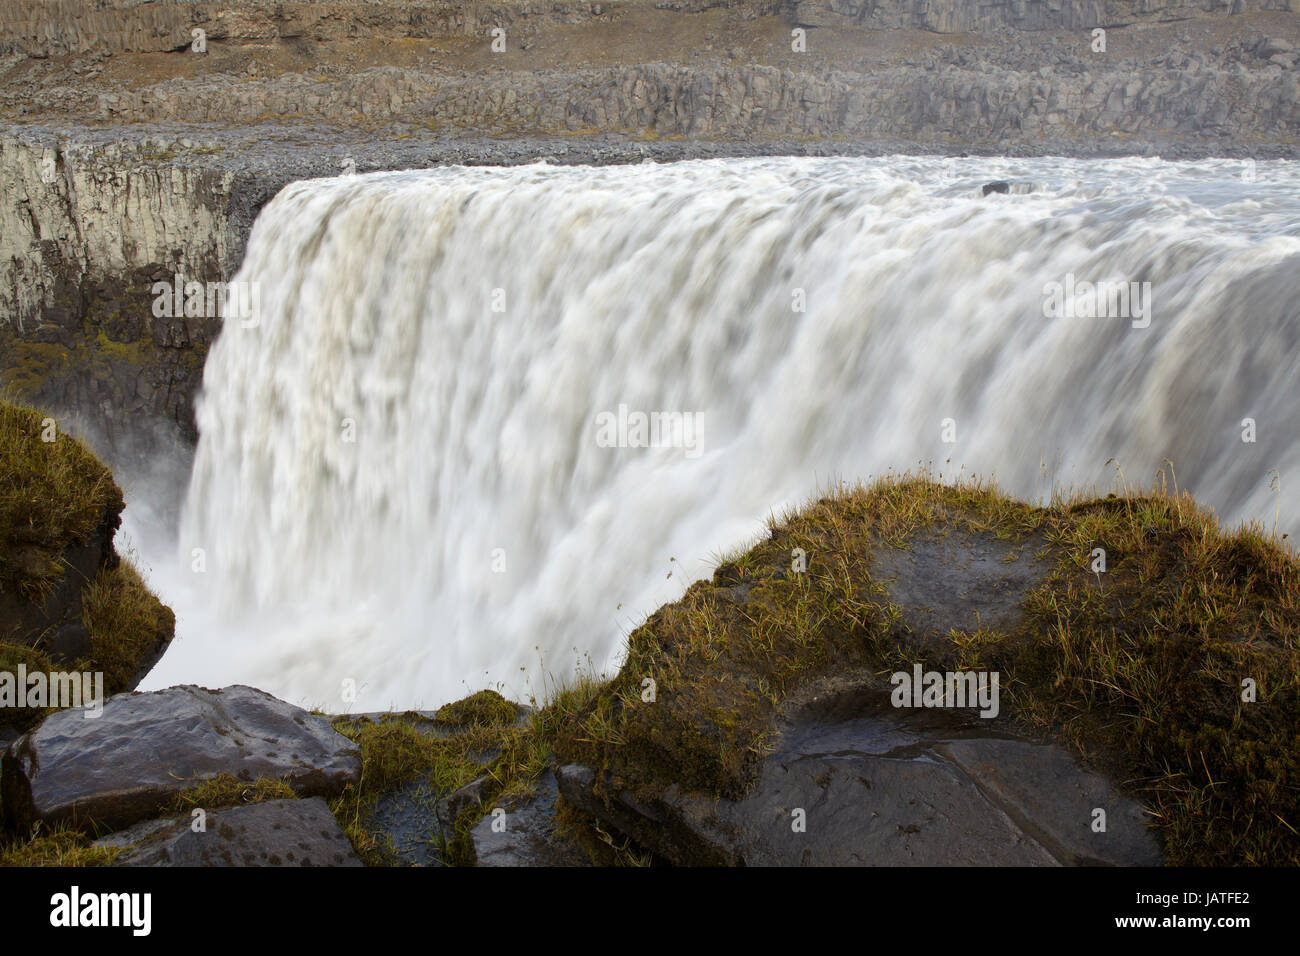 Upper Detifoss falls in North Iceland - Stock Image